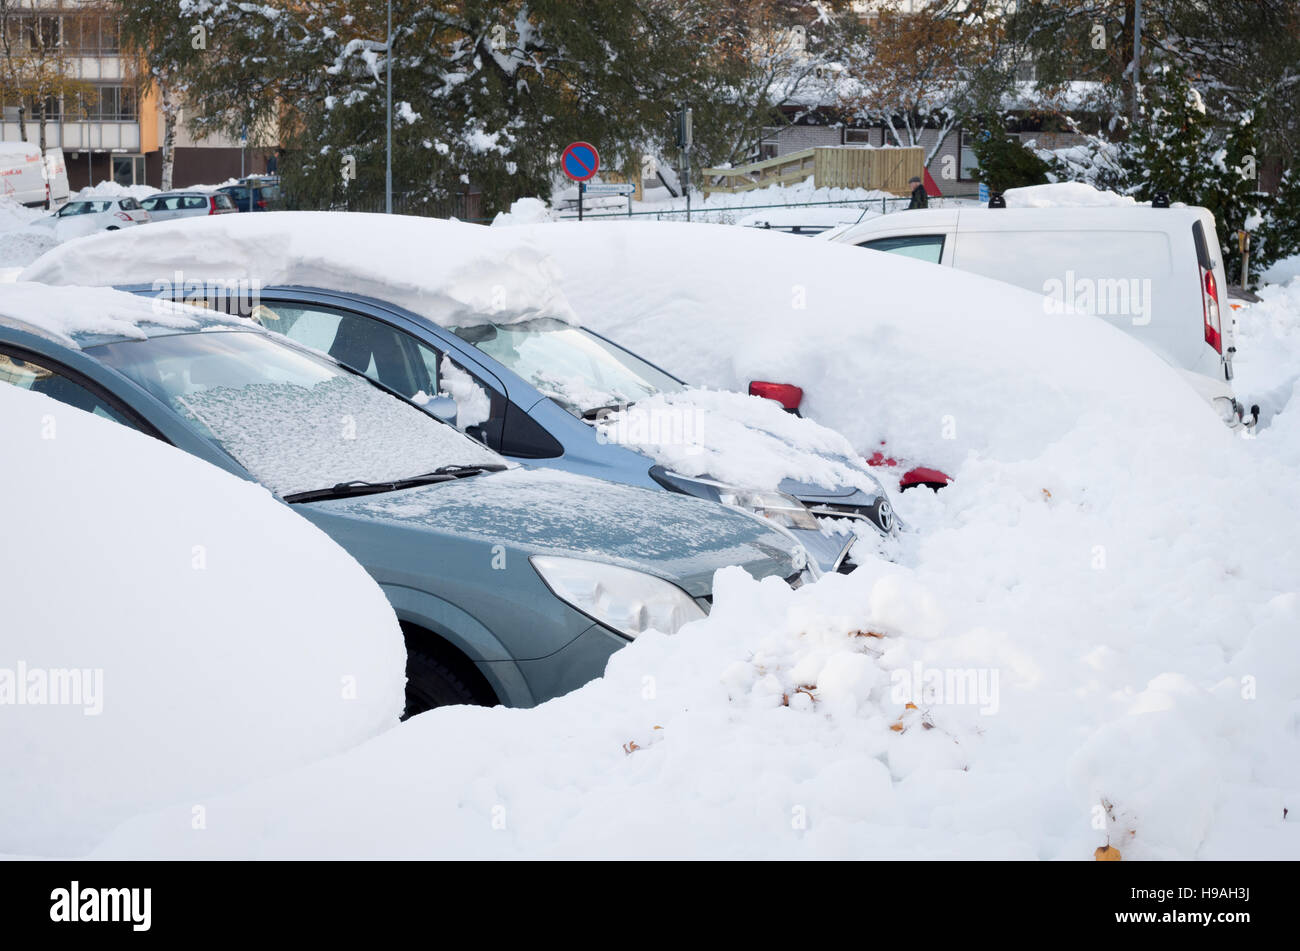 dee9ab5247 Parked cars covered in snow after an early November snowstorm - Stock Image